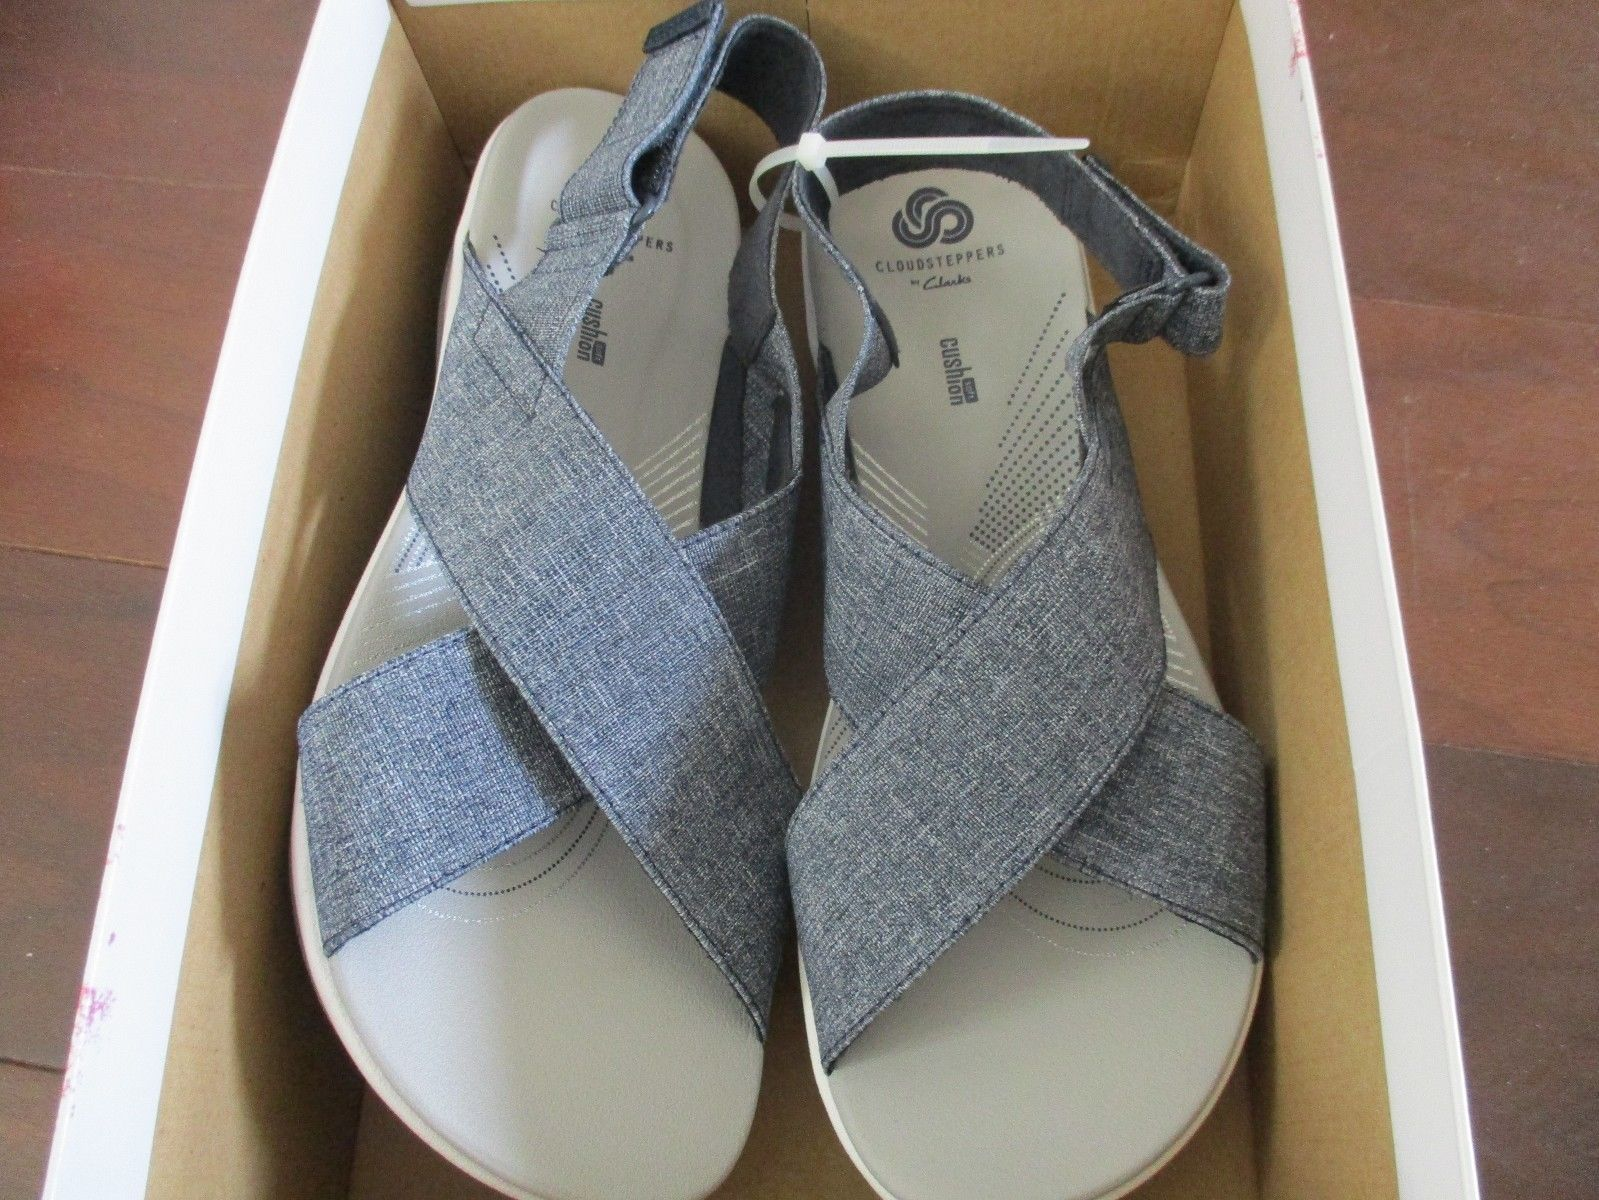 BNIB Clarks Cloudsteppers Arla Kaydin Ortholite Sandals, Women, Size 9M, Navy